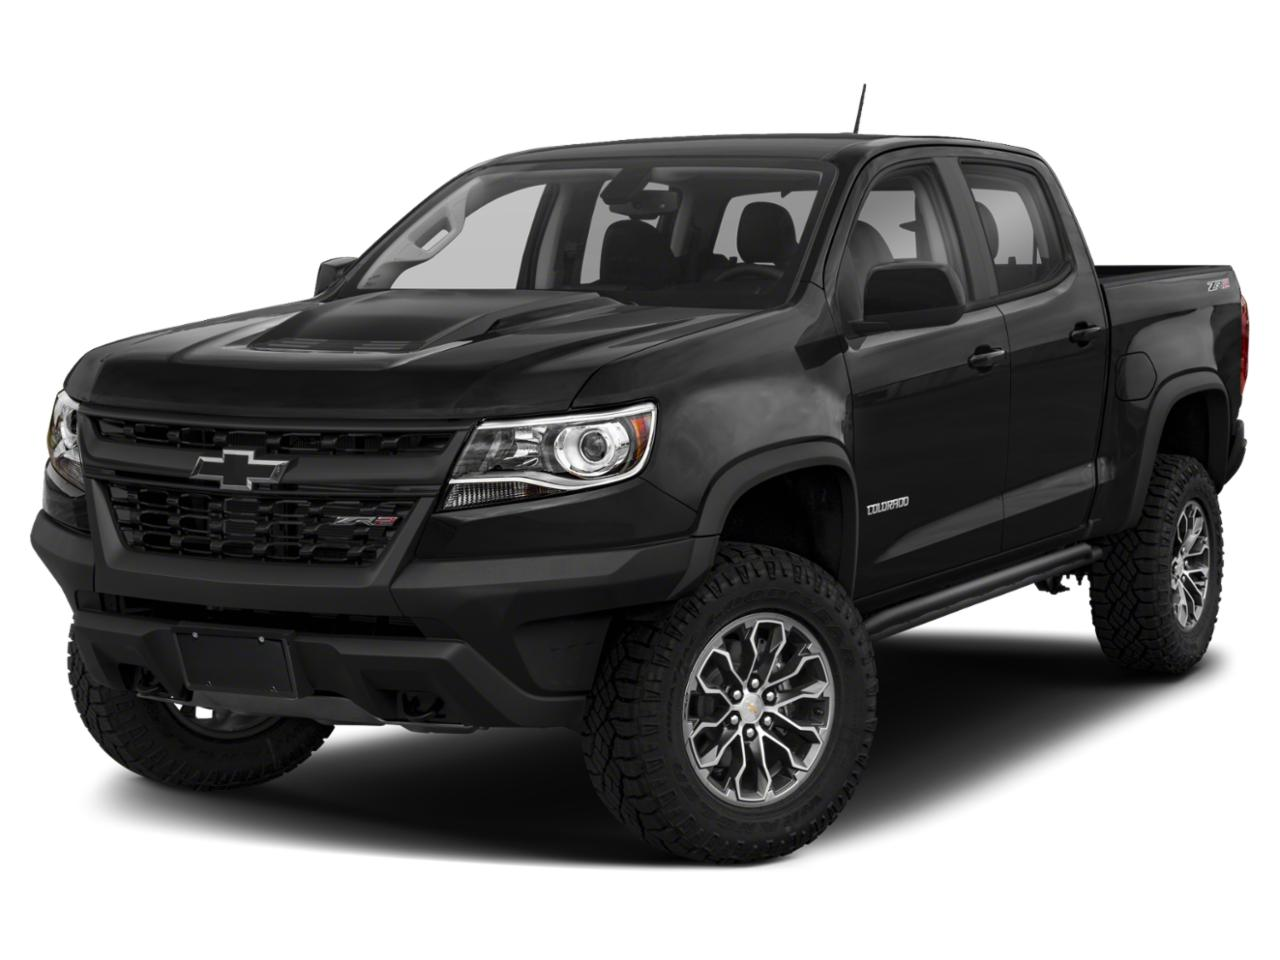 2020 Chevrolet Colorado Vehicle Photo in Avondale, AZ 85323